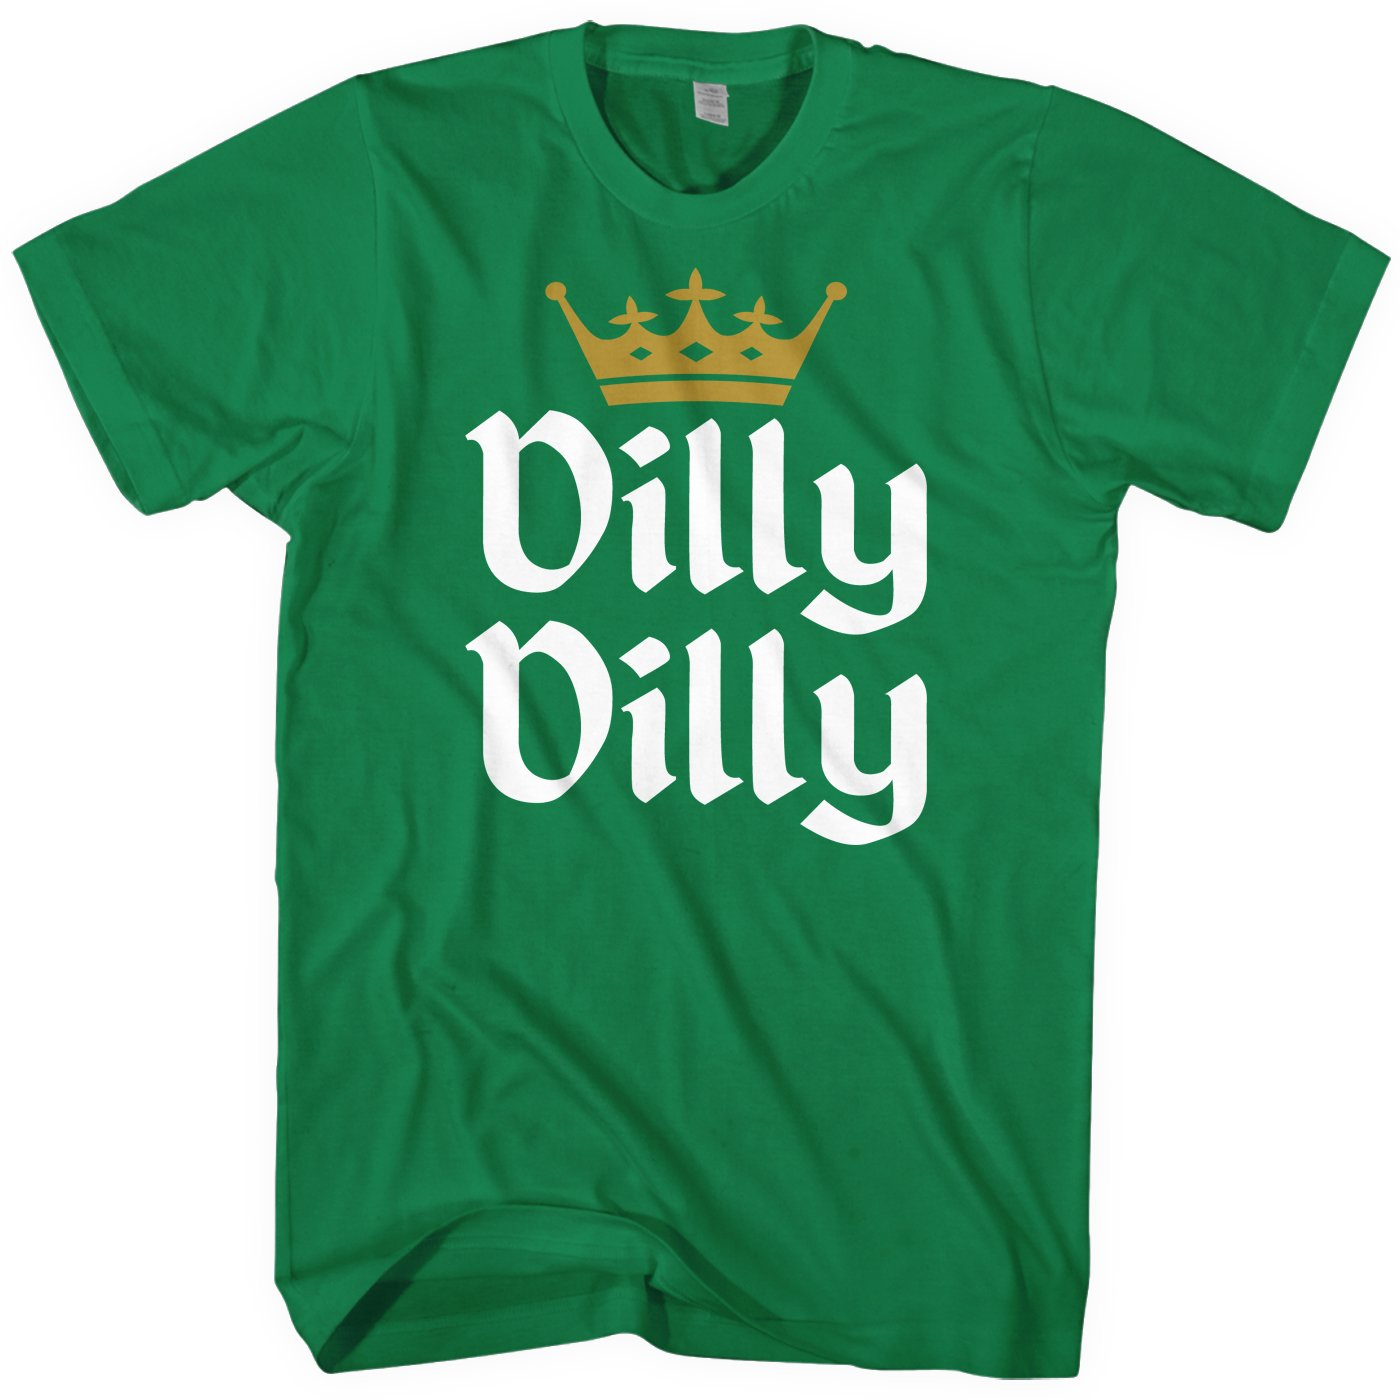 47587533631 Amazon.com  Mixtbrand Men s Dilly Dilly St. Patrick s Day   Gold Crown T- Shirt  Clothing